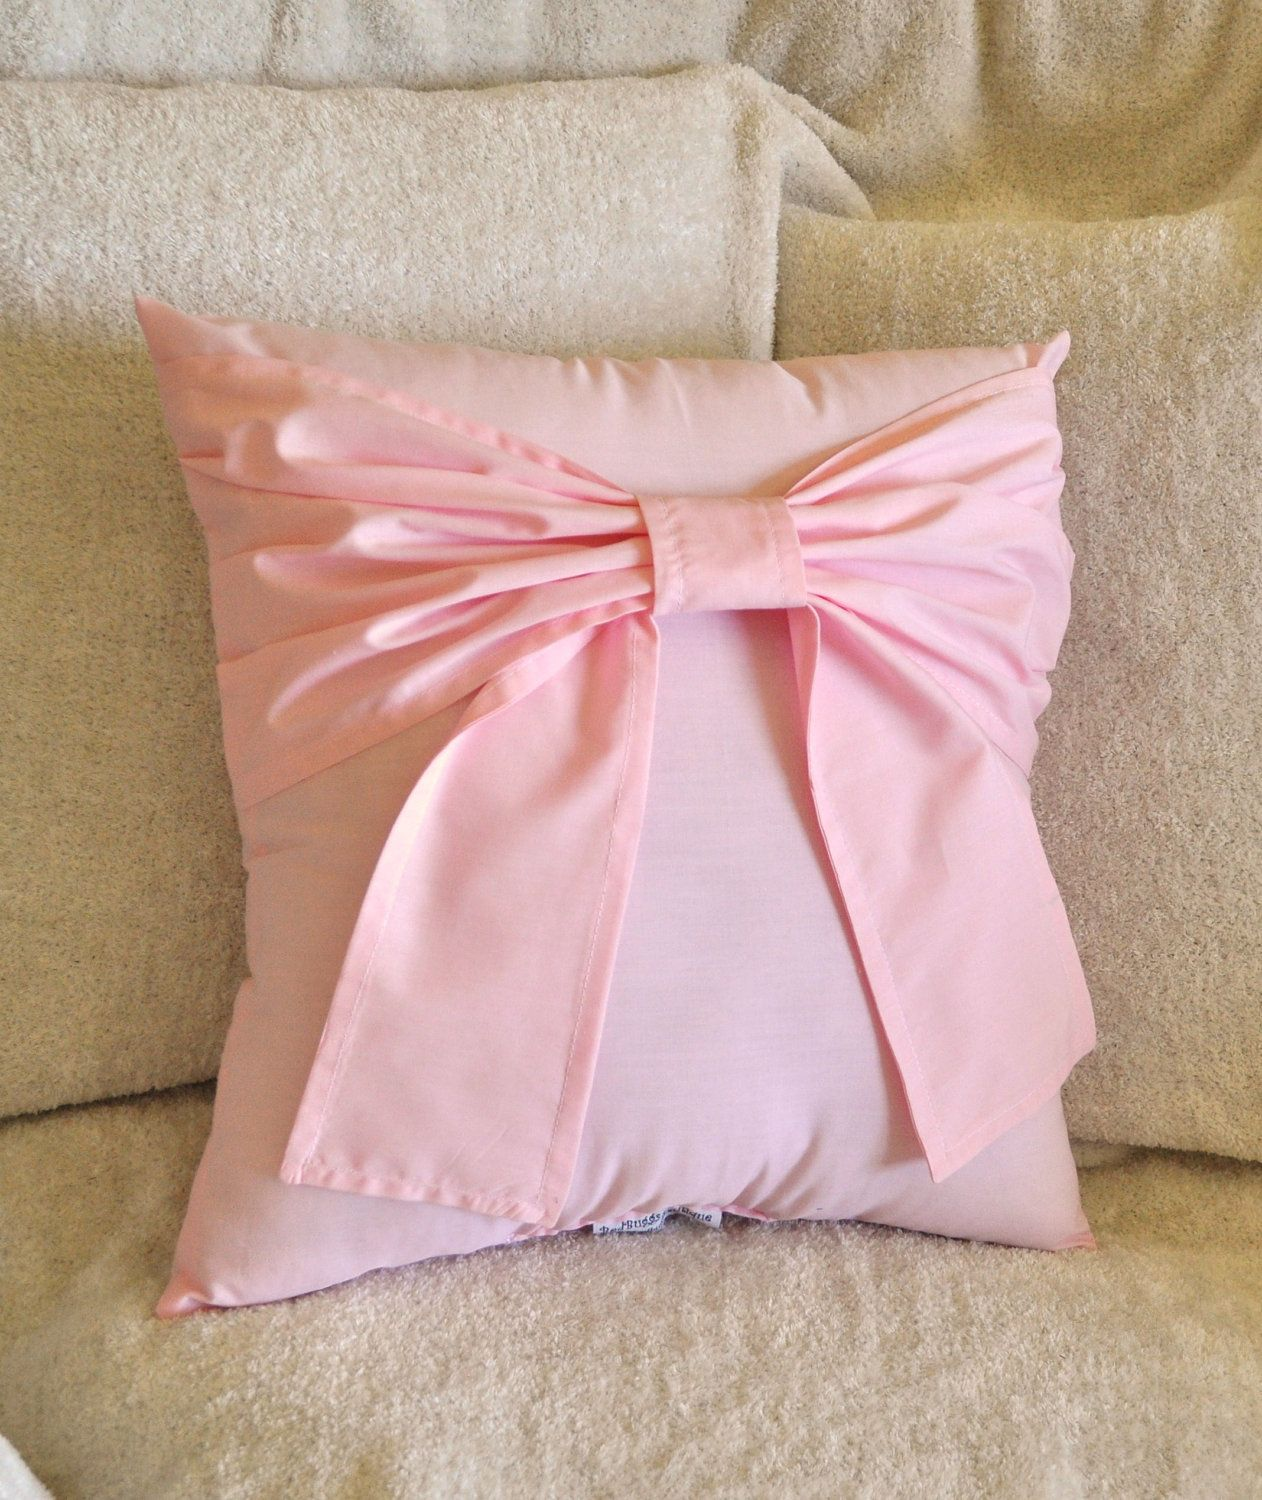 pillow | my room | Pinterest | Pillows, Pink pillows and Pink ribbons